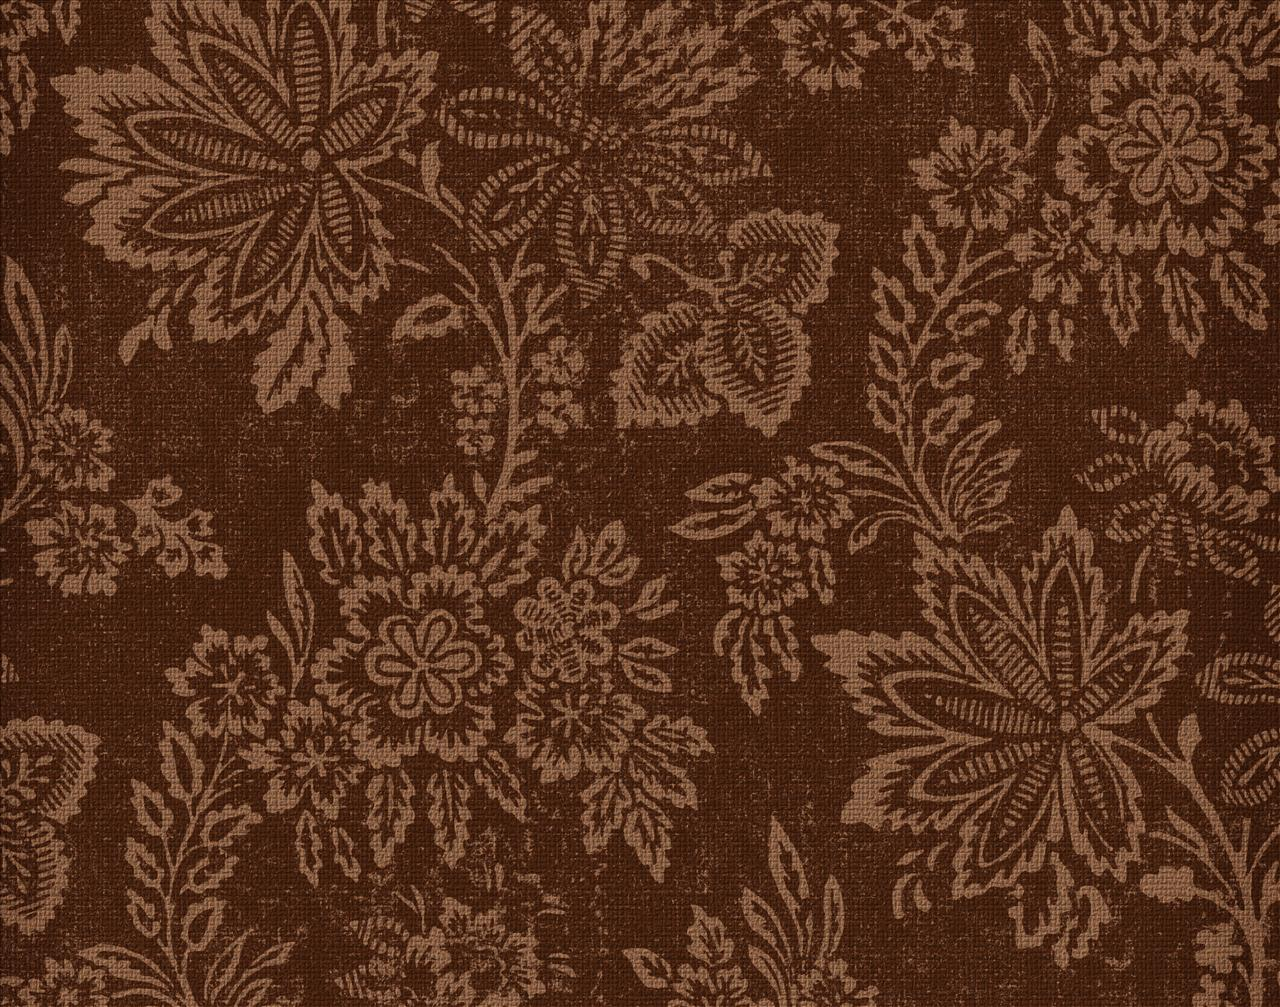 Hd Cream Wallpaper Brown